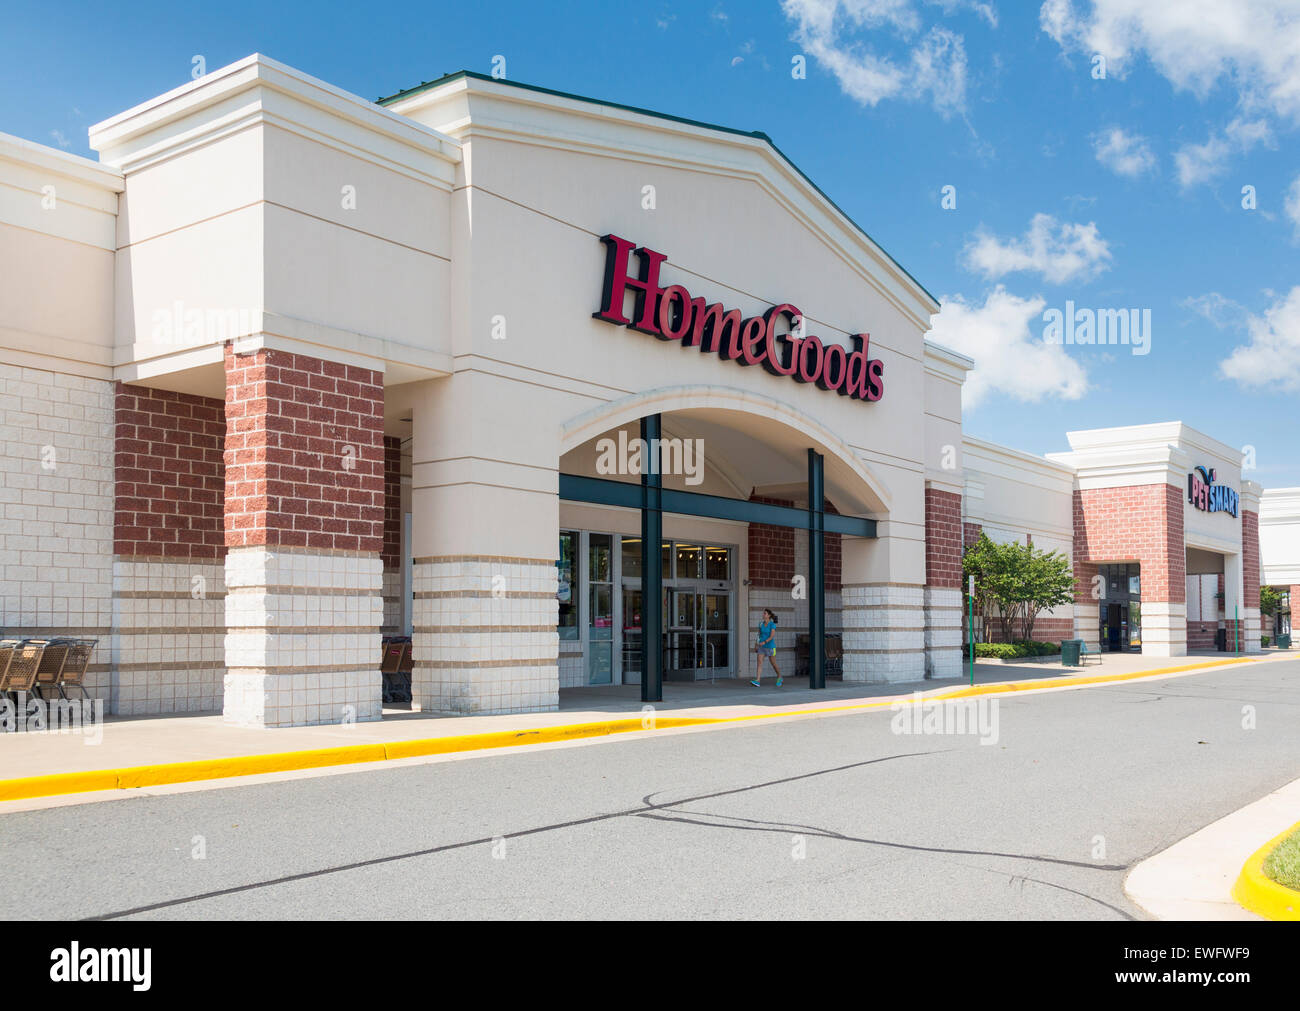 HomeGoods Furniture Store In Gainesville, Virginia, USA